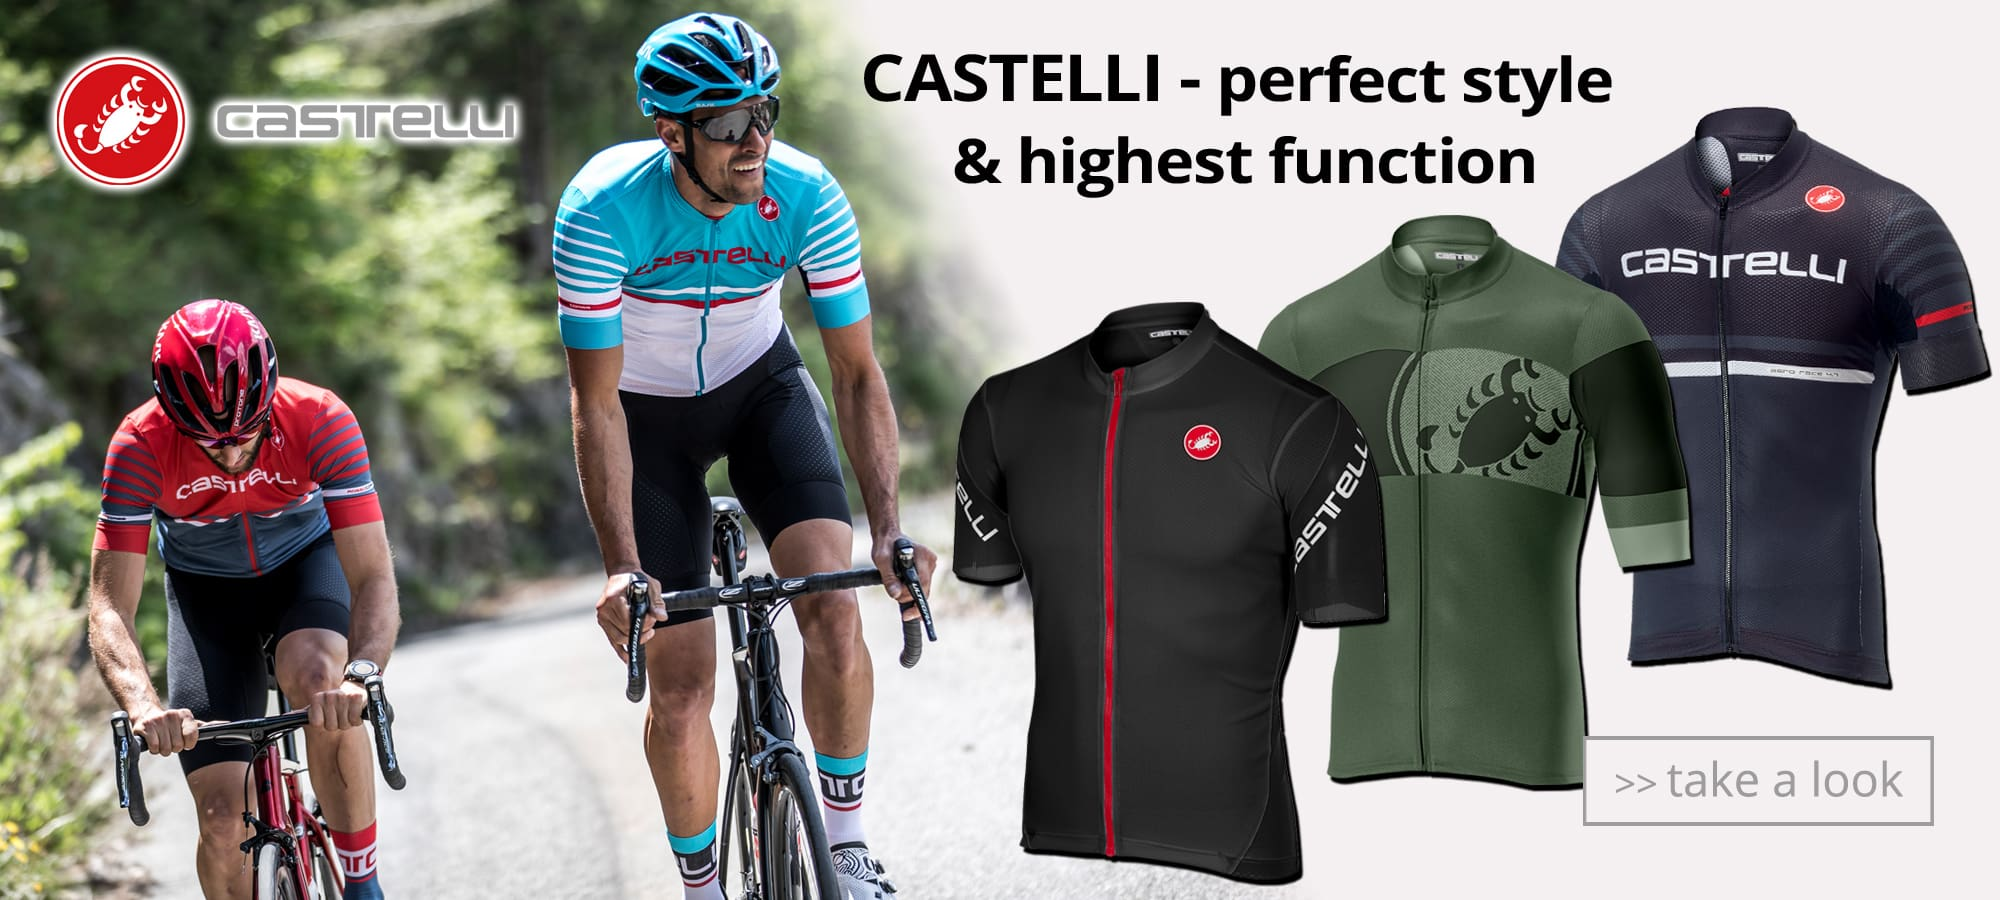 Castelli - The new line 2019